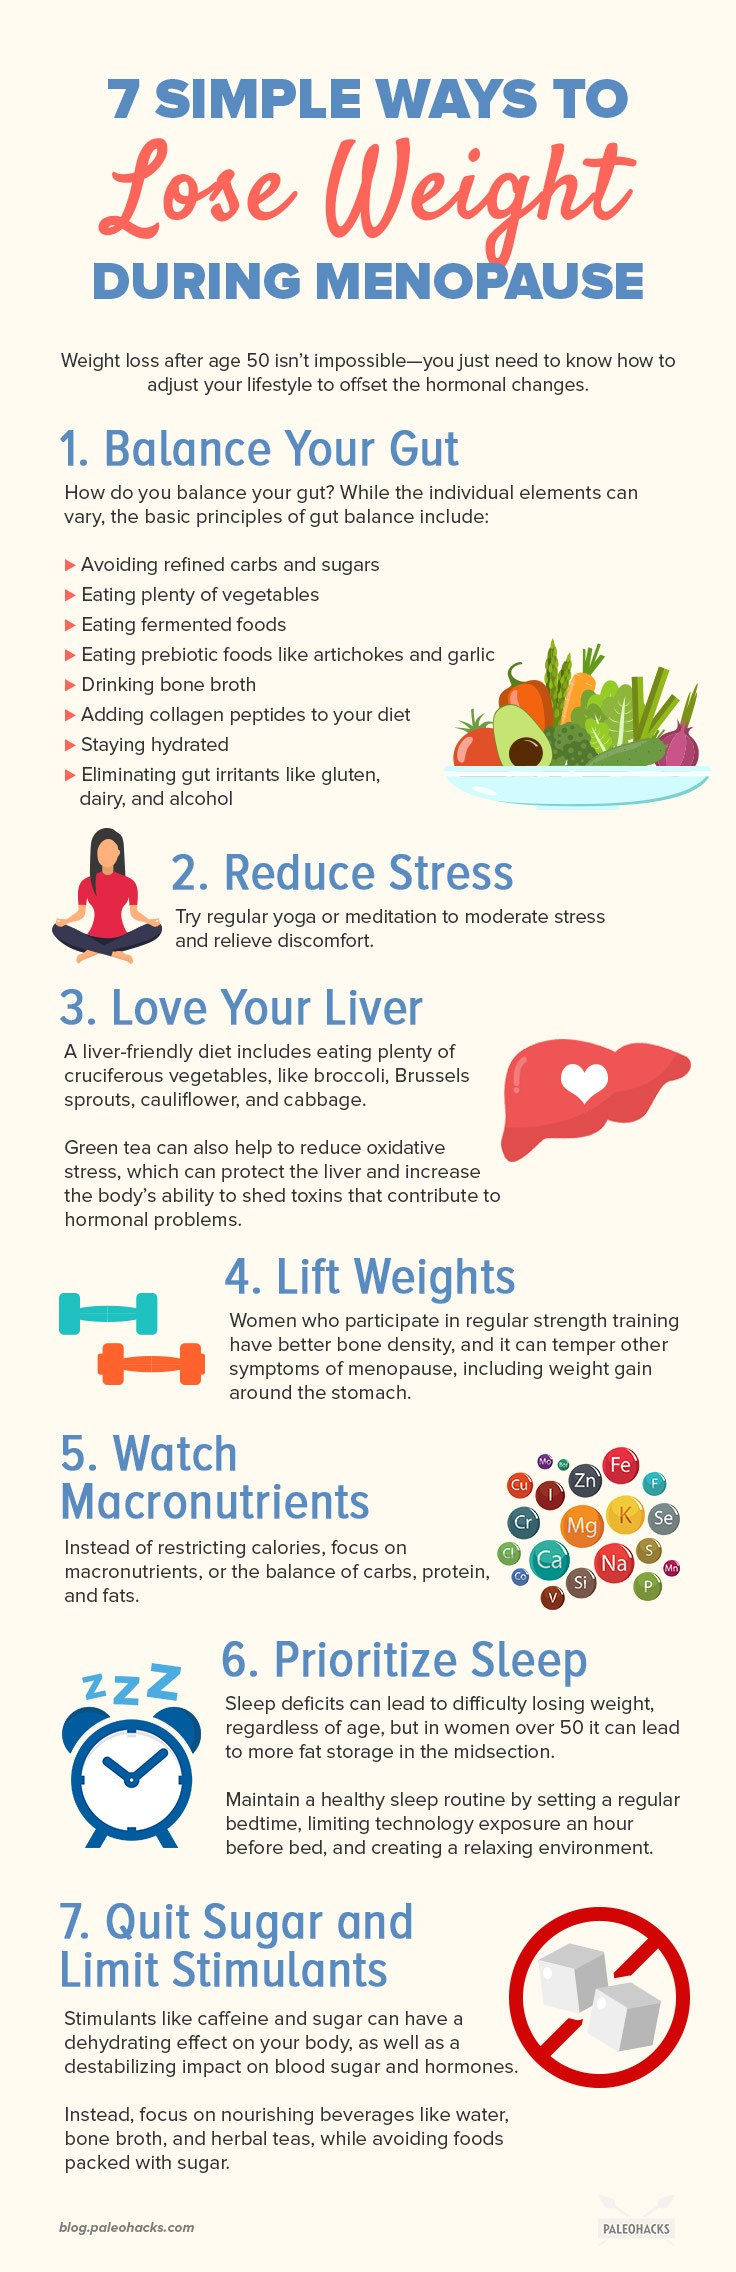 7-Simple-Ways-to-Lose-Weight-During-Menopause-infog.jpg